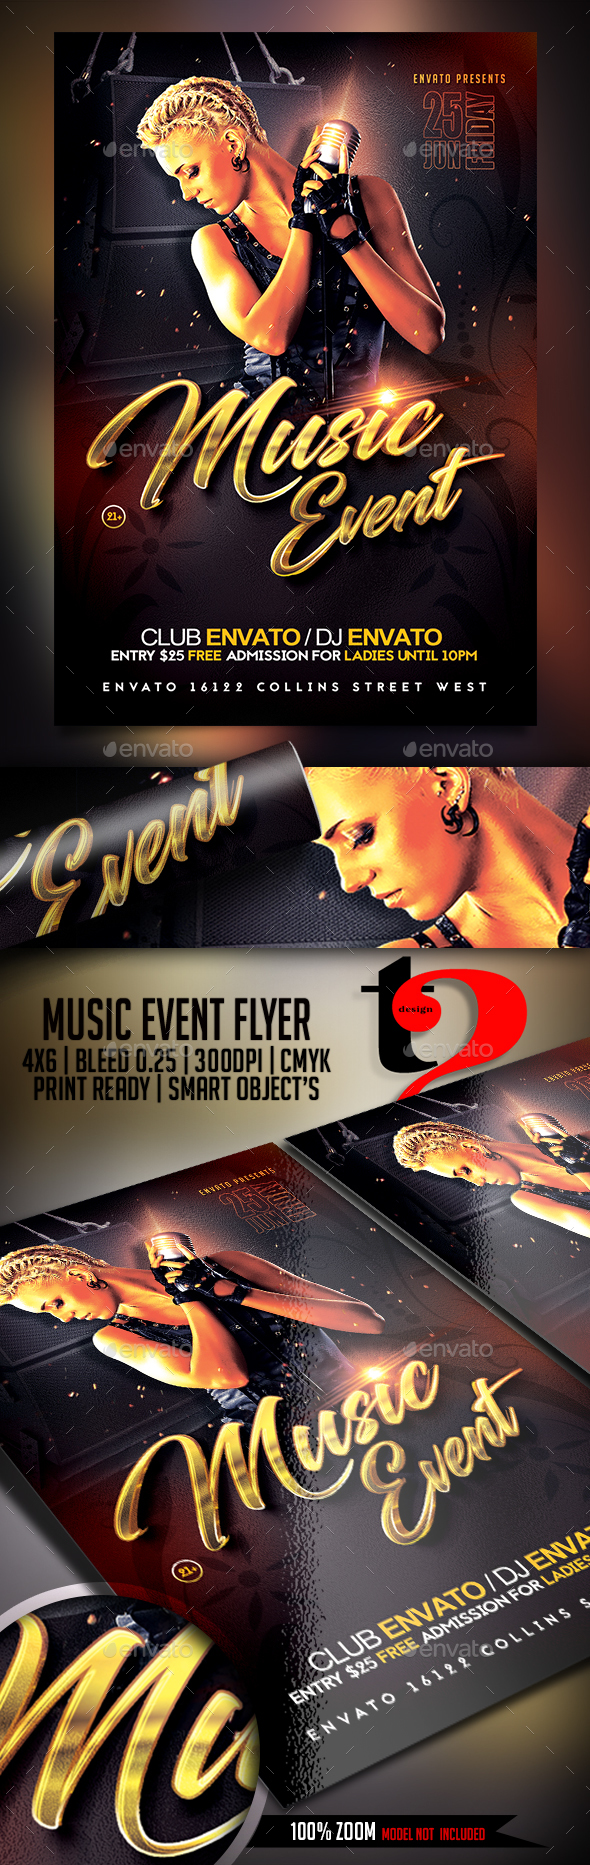 Music Event Flyer Template - Clubs & Parties Events